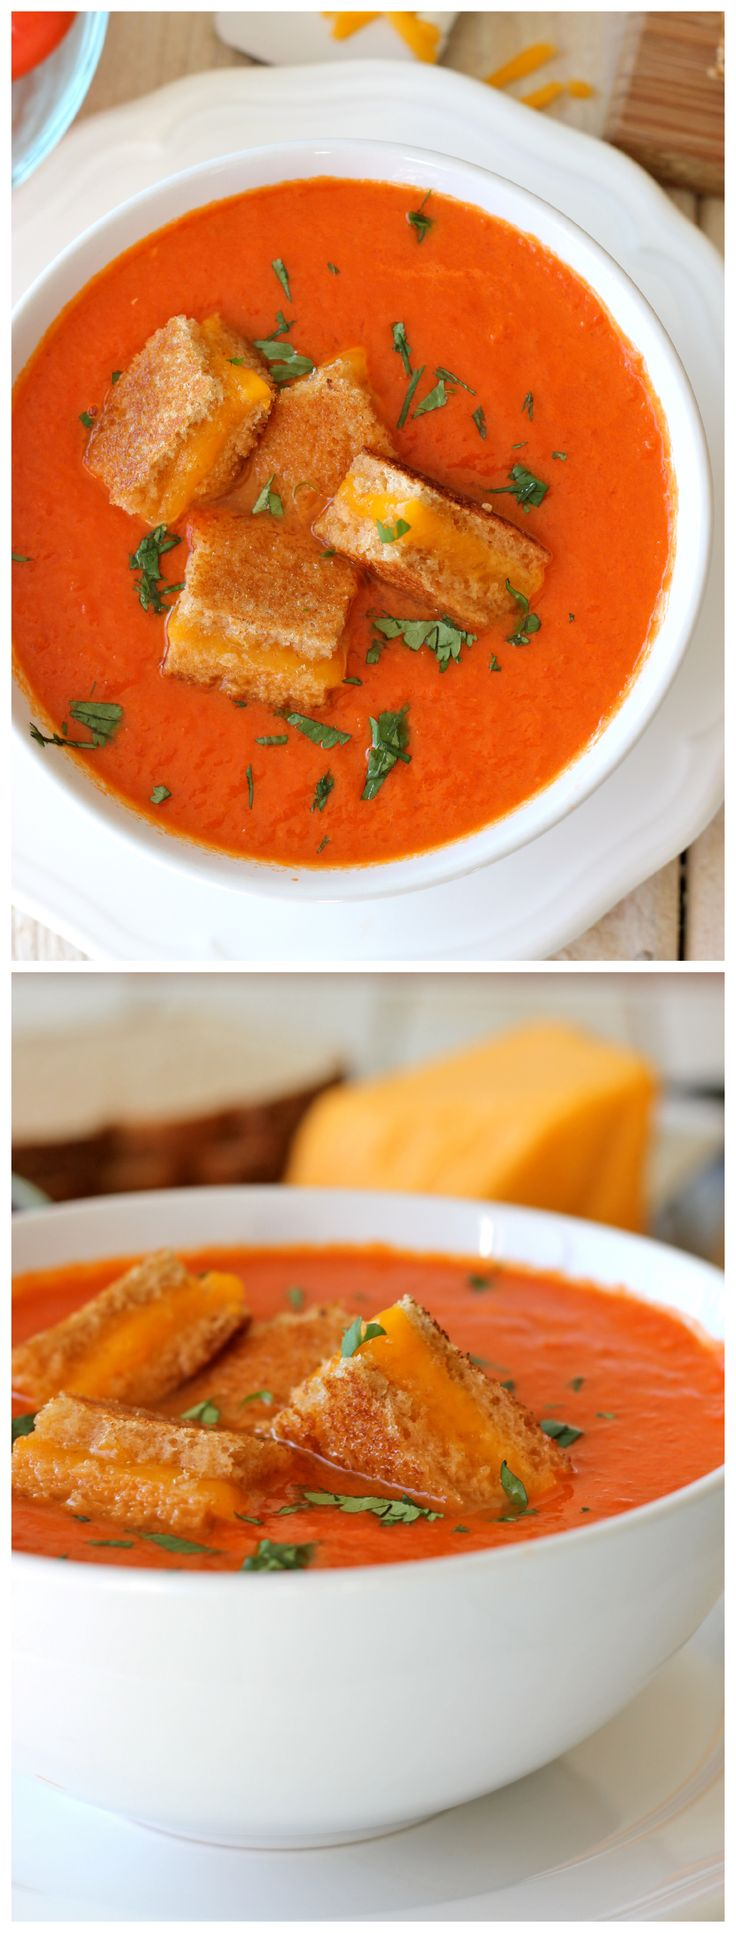 "Creamy Tomato Soup with Grilled Cheese ""Croutons"" - The perfect ..."